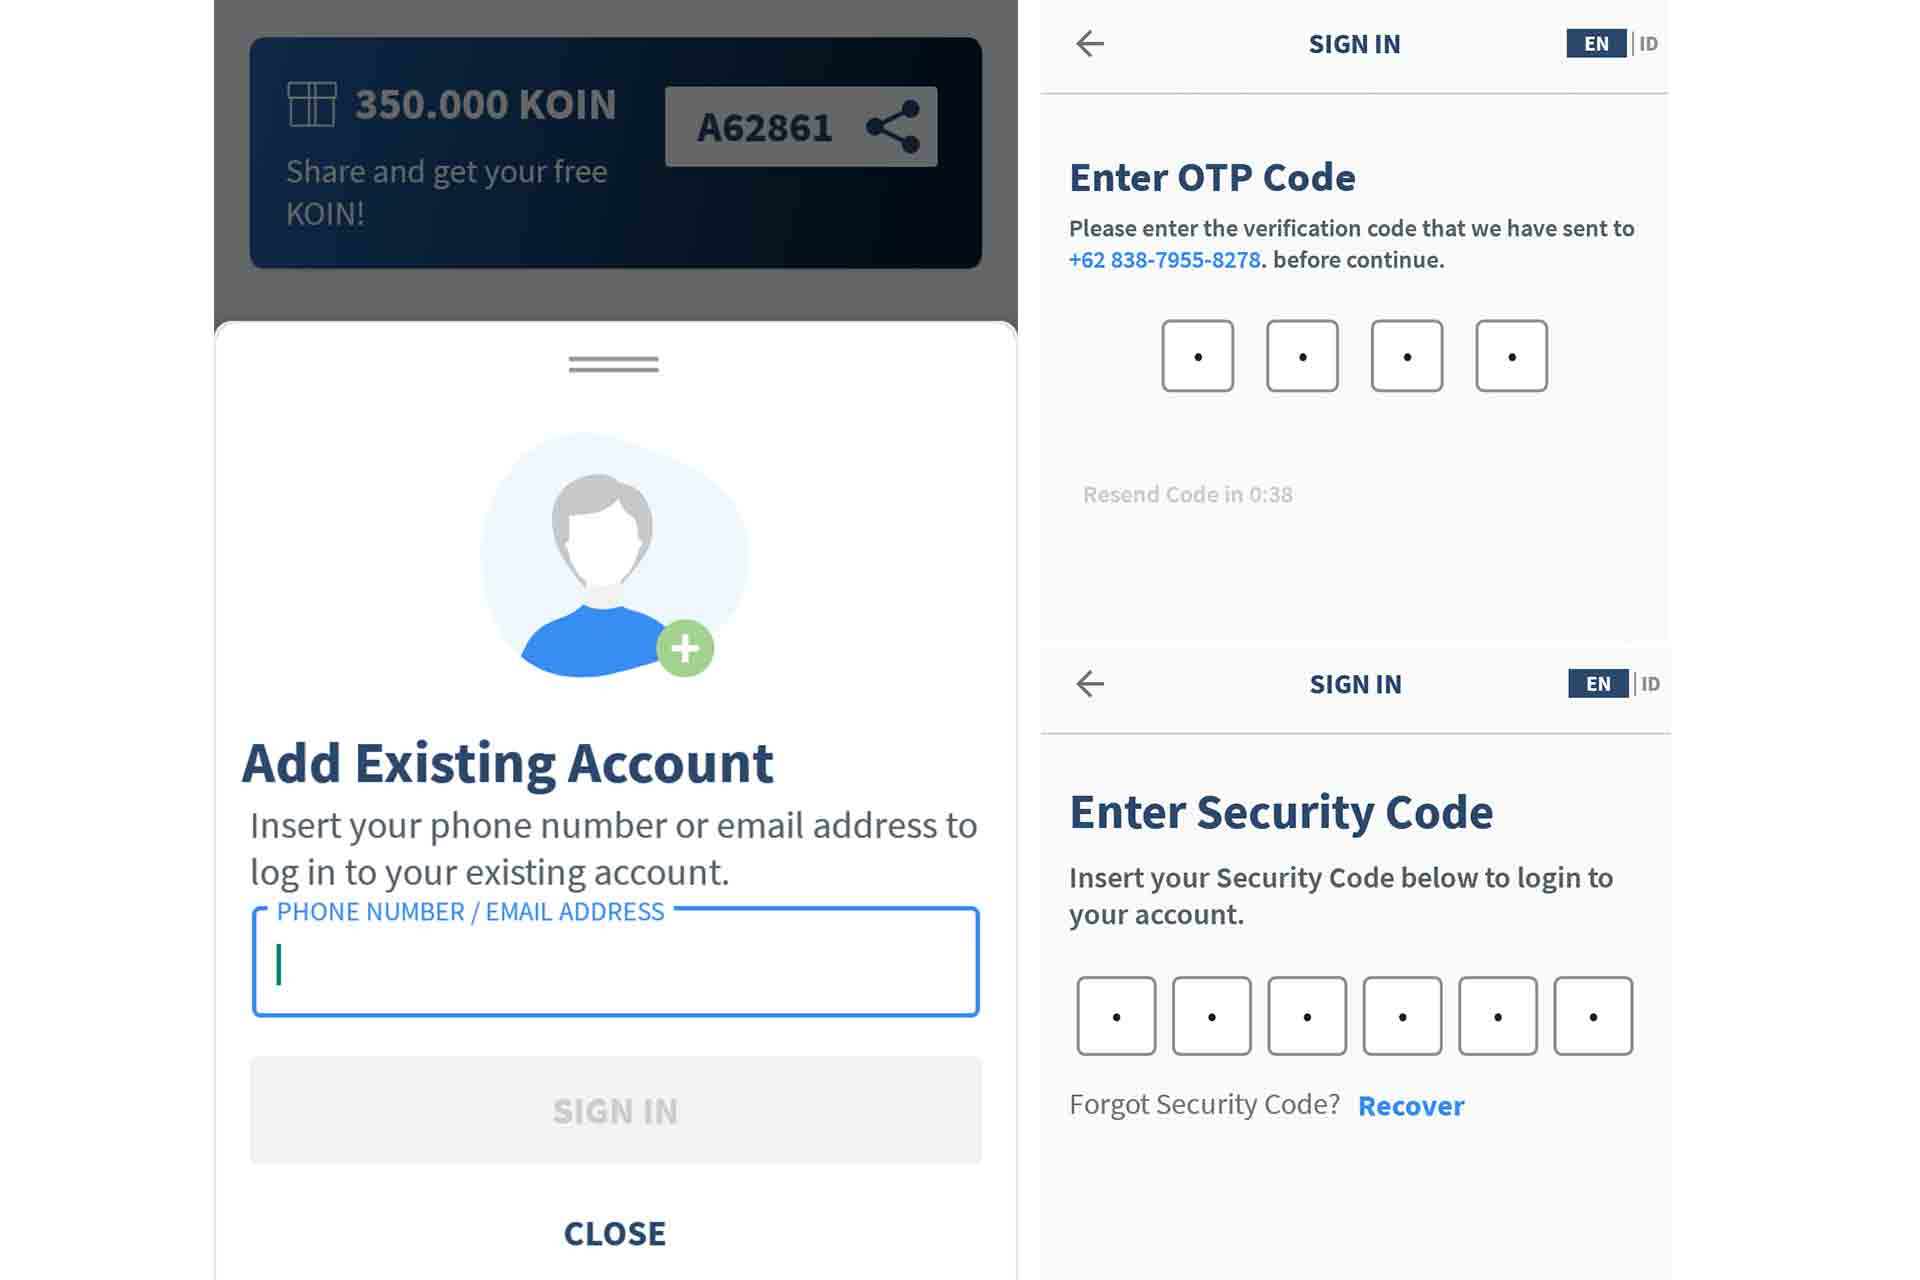 switch account - add existing account